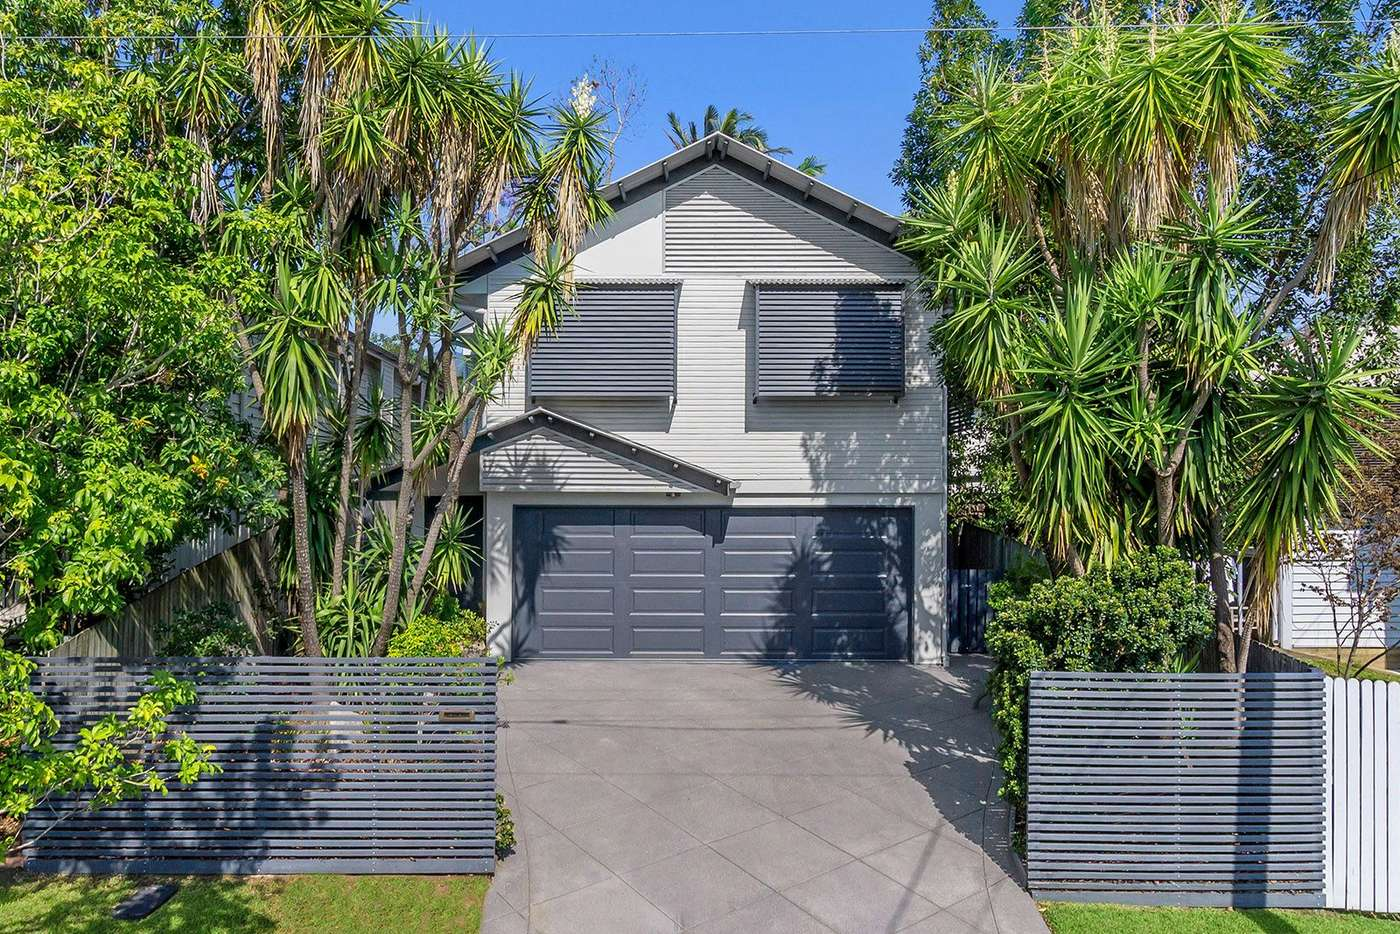 Main view of Homely house listing, 3 Bay Street, Kedron QLD 4031